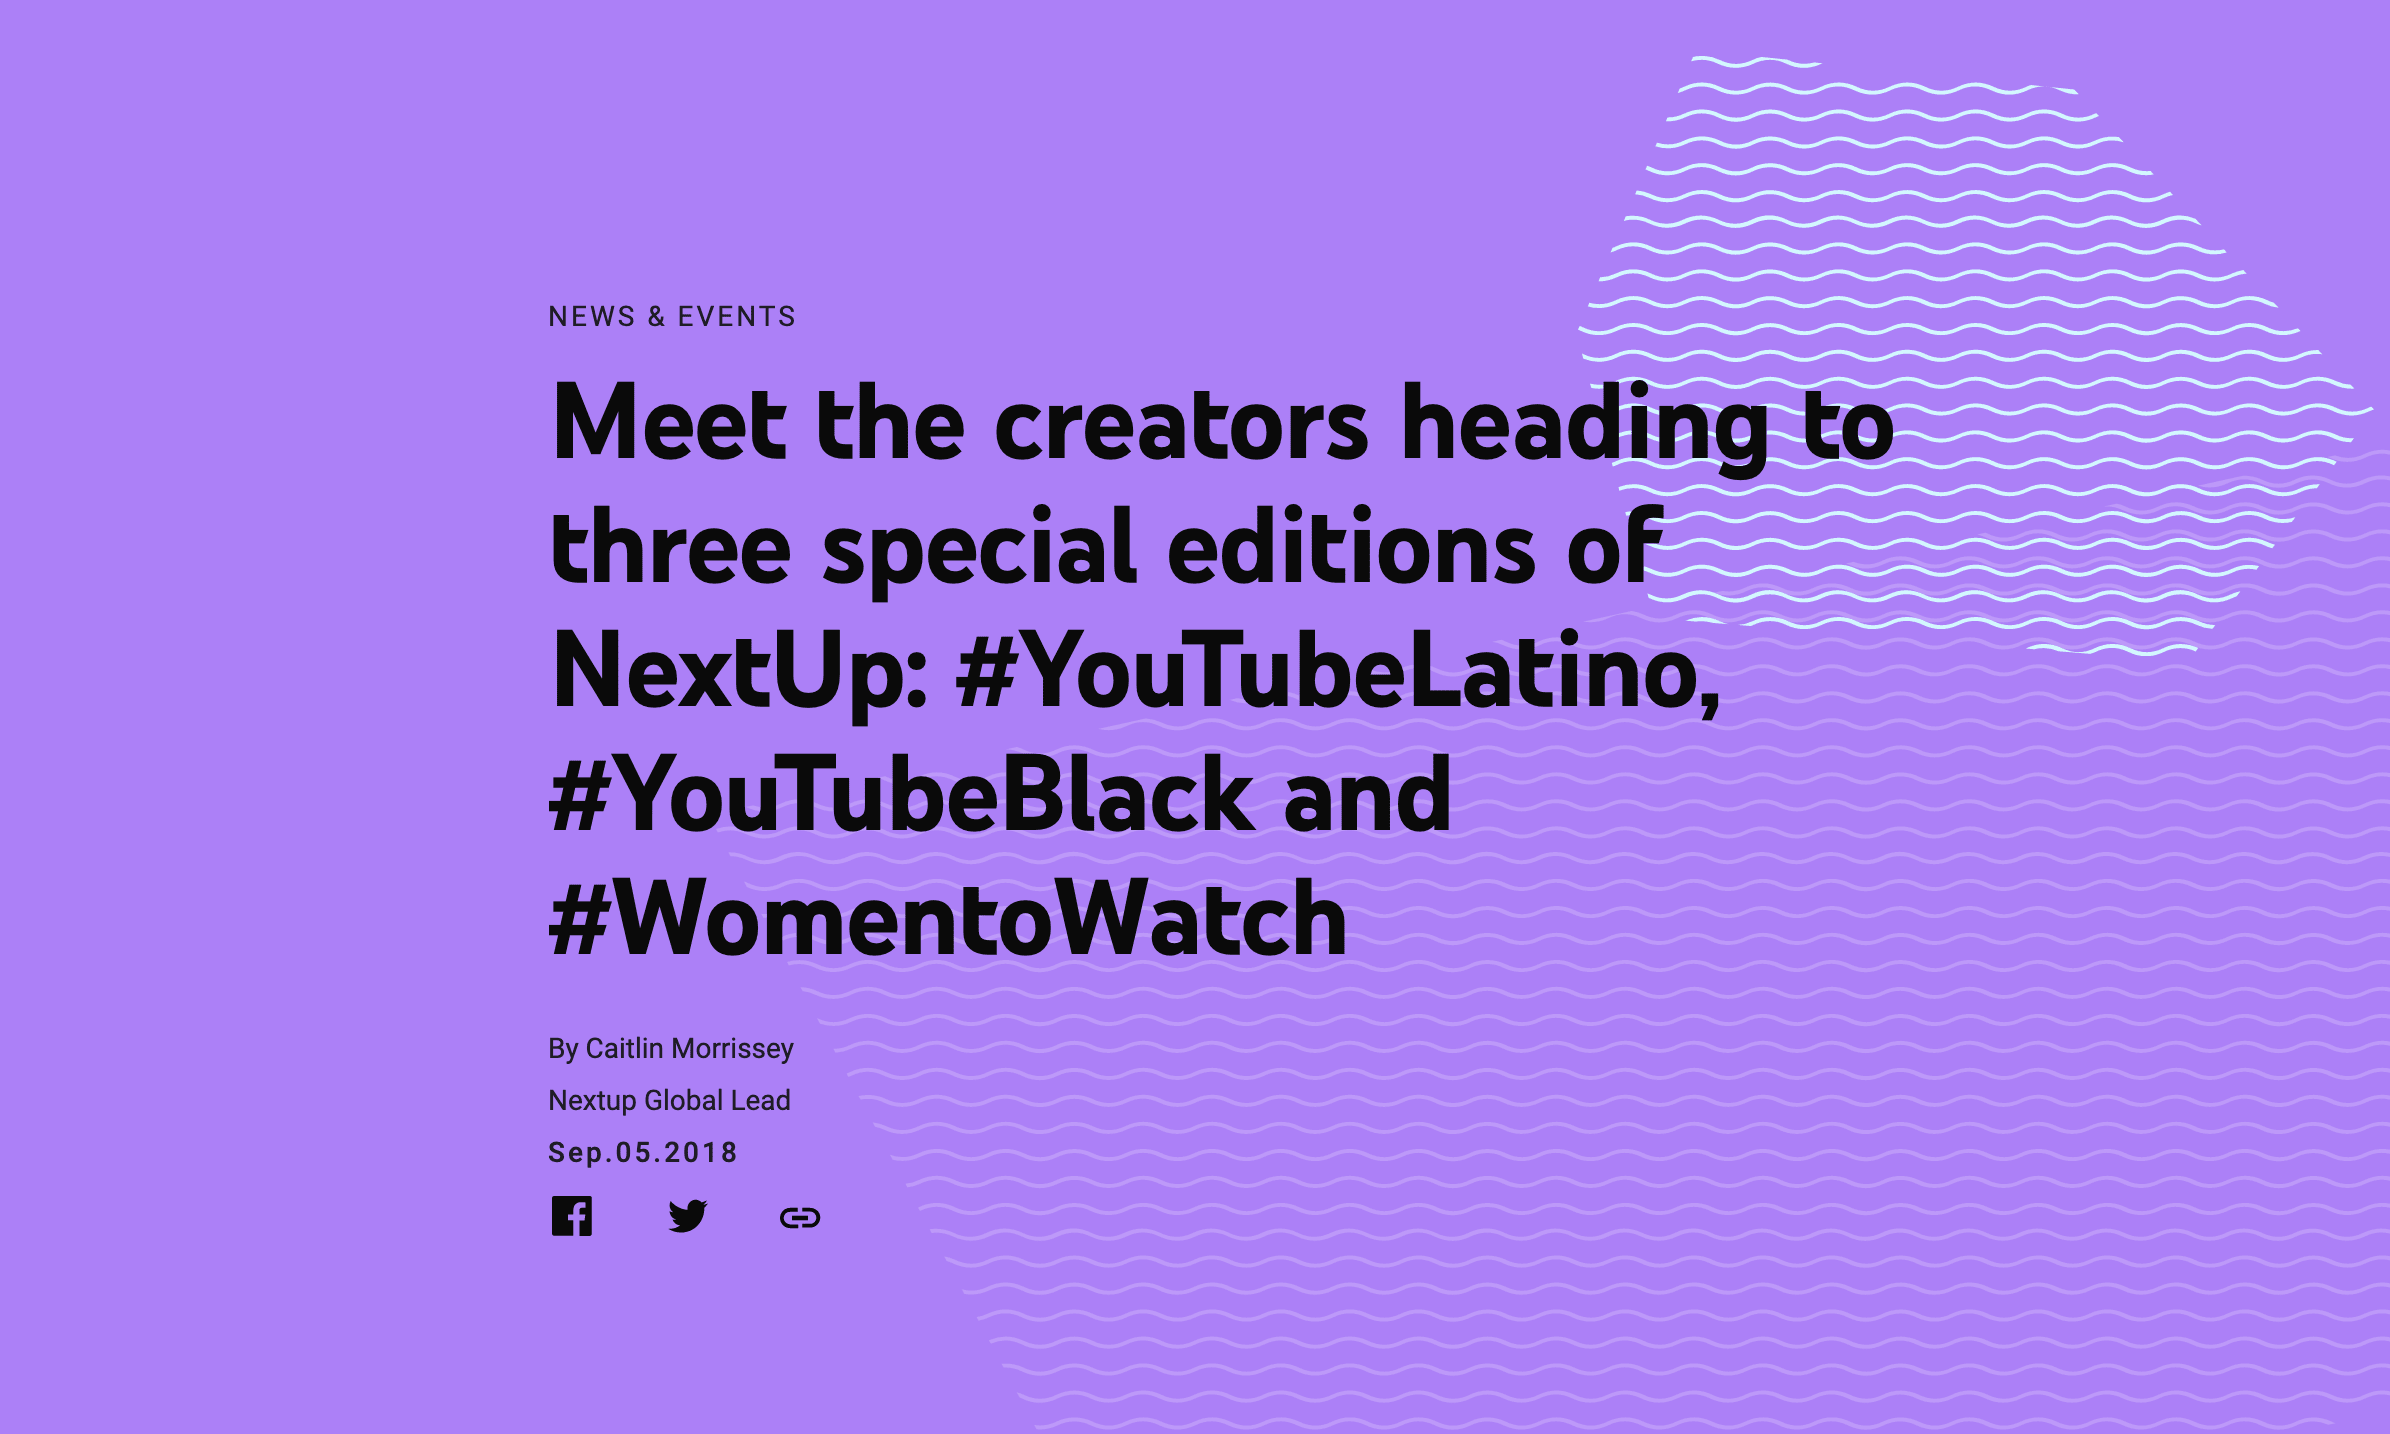 Meet the creators heading to three special editions of NextUp: #YouTubeLatino